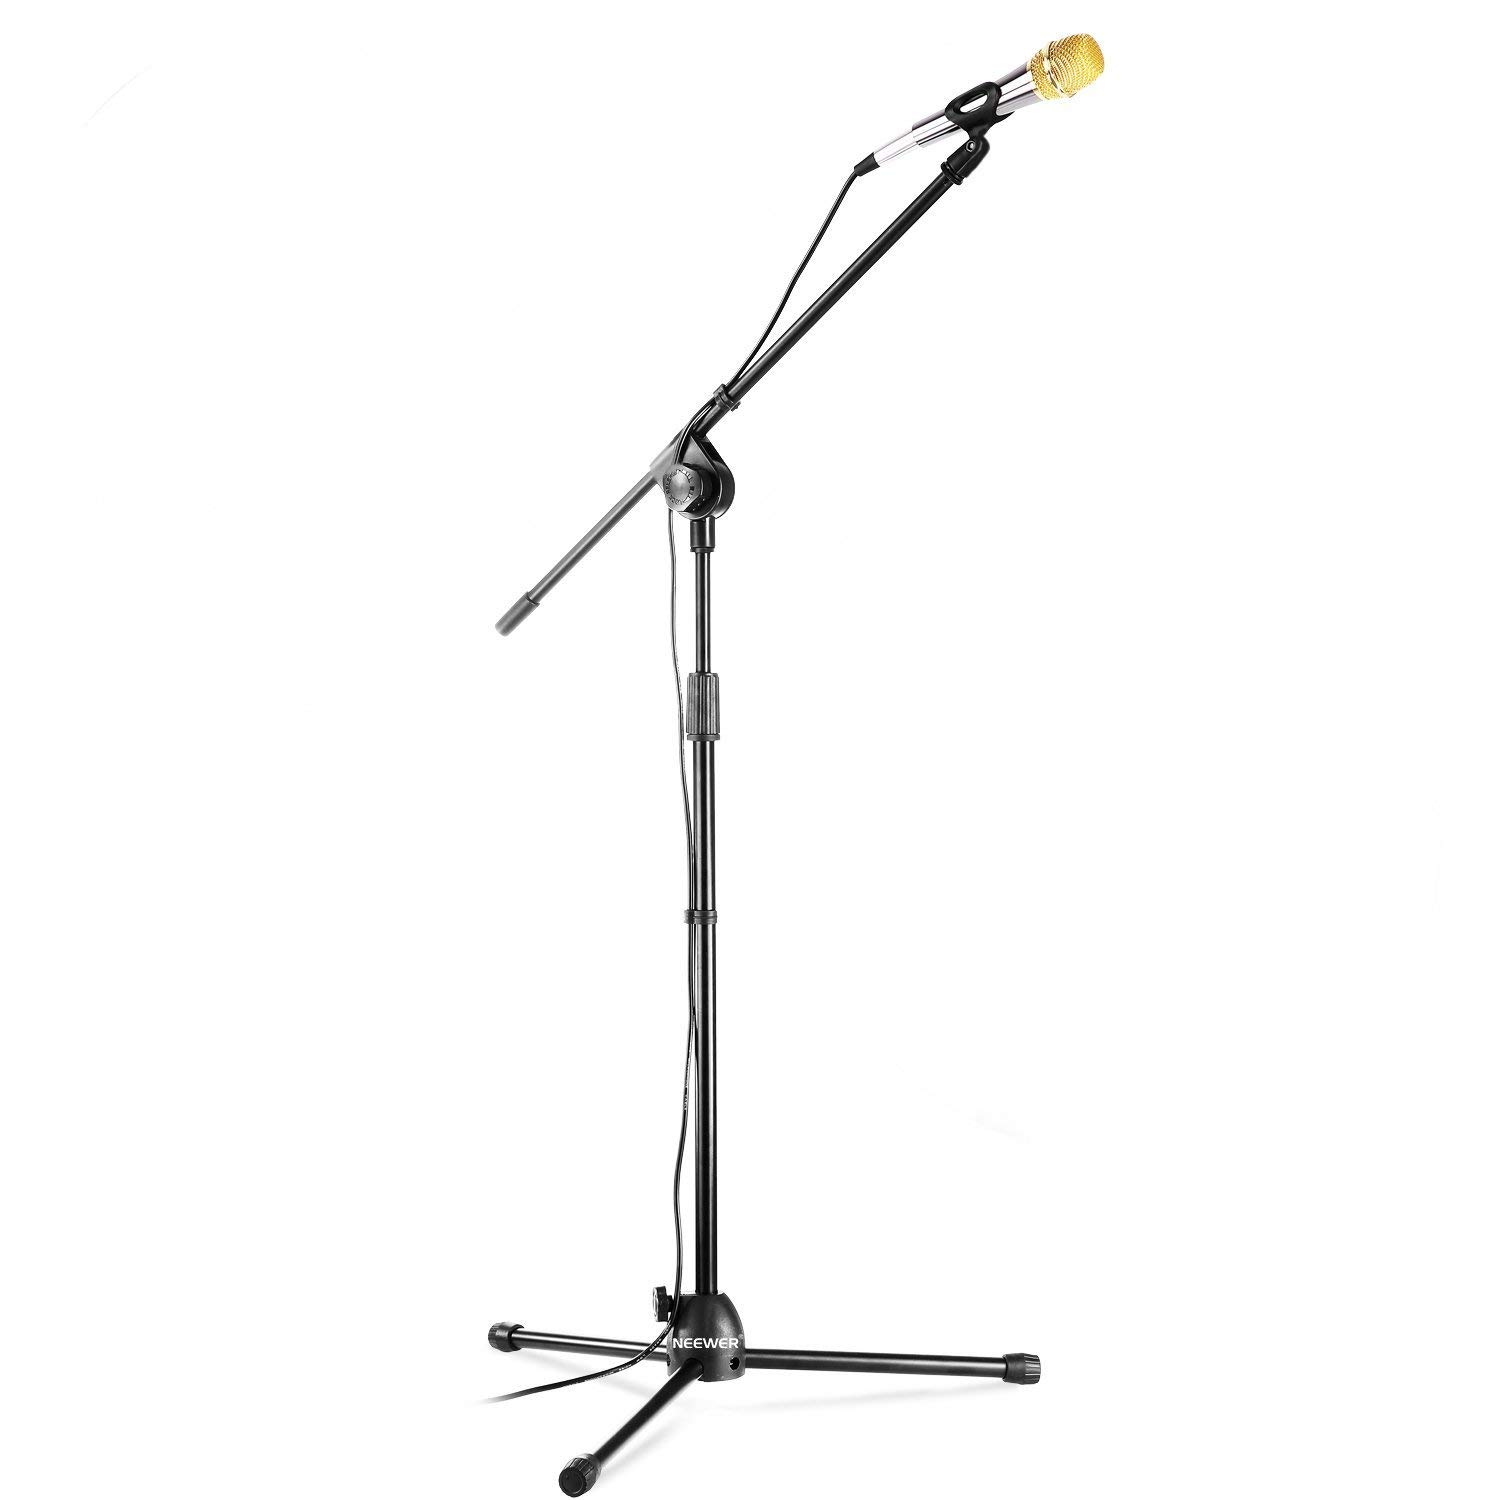 Neewer Professional Microphone Kit: Condenser Microphone with Foam Windscreen + Height Adjustable Tripod Floor Stand with a Removable Boom + 3.5mm Male to XLR Female Microphone Cable